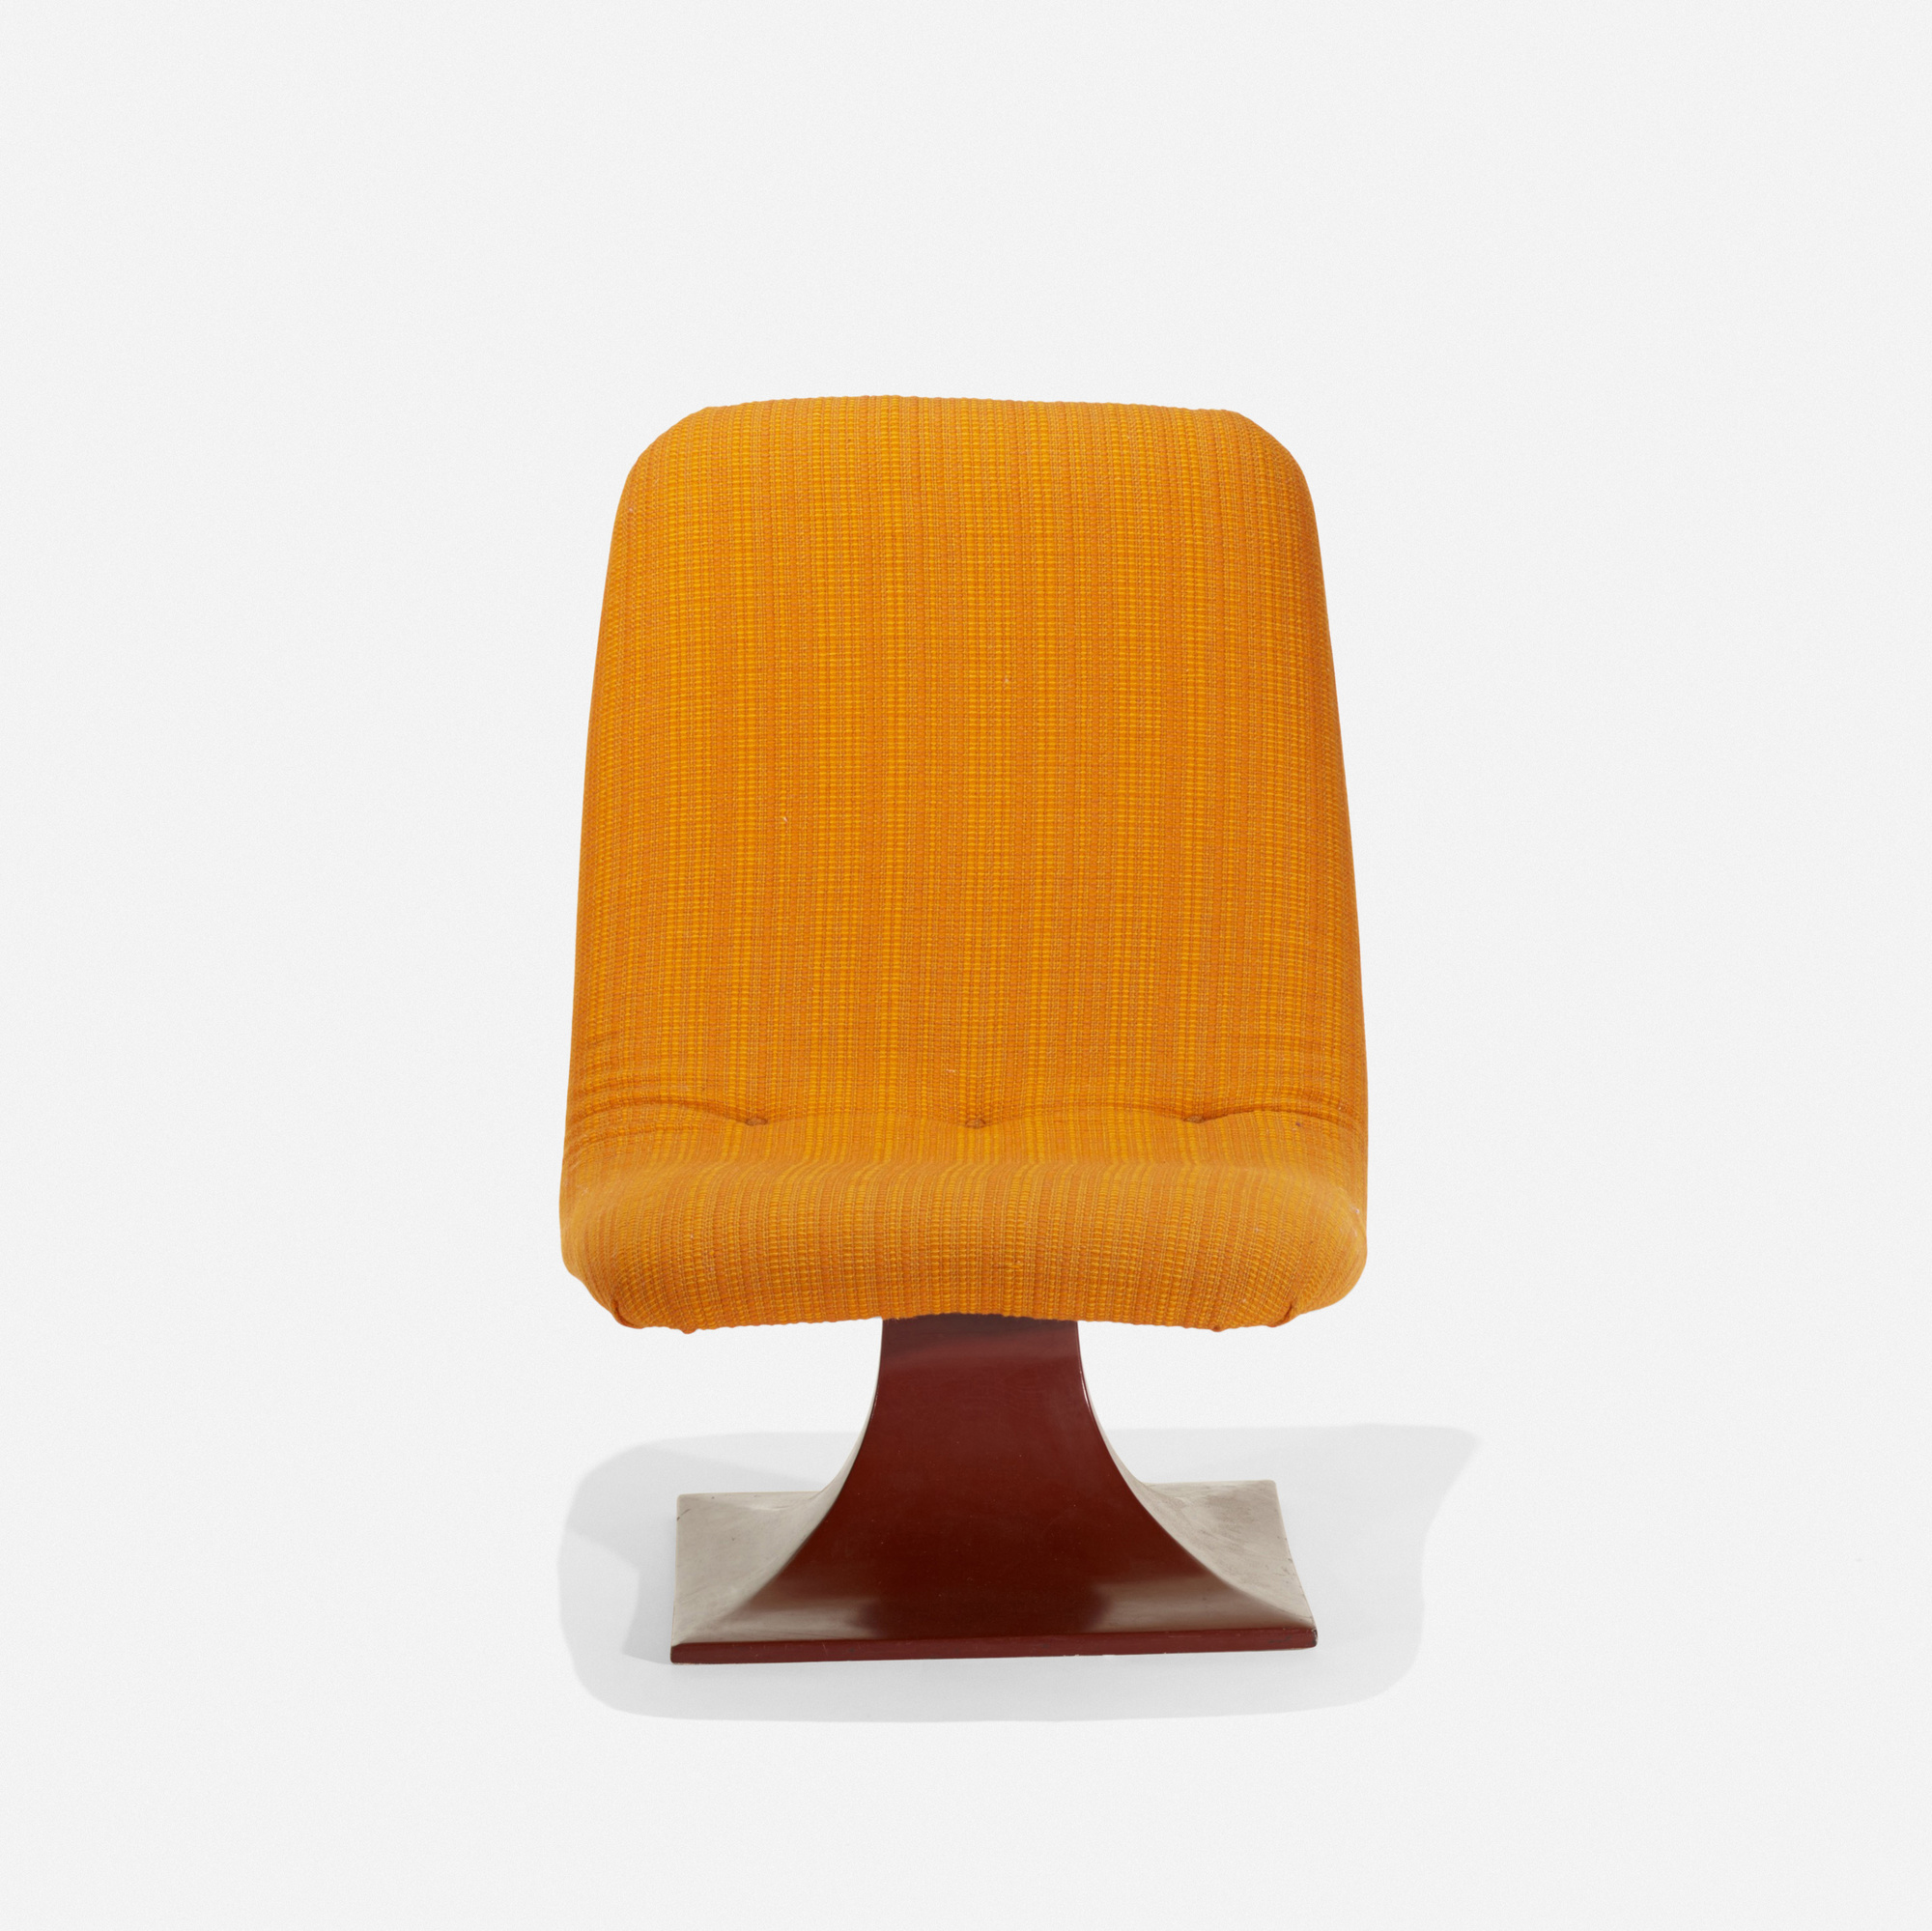 231: Milo Baughman / prototype lounge chair (2 of 3)